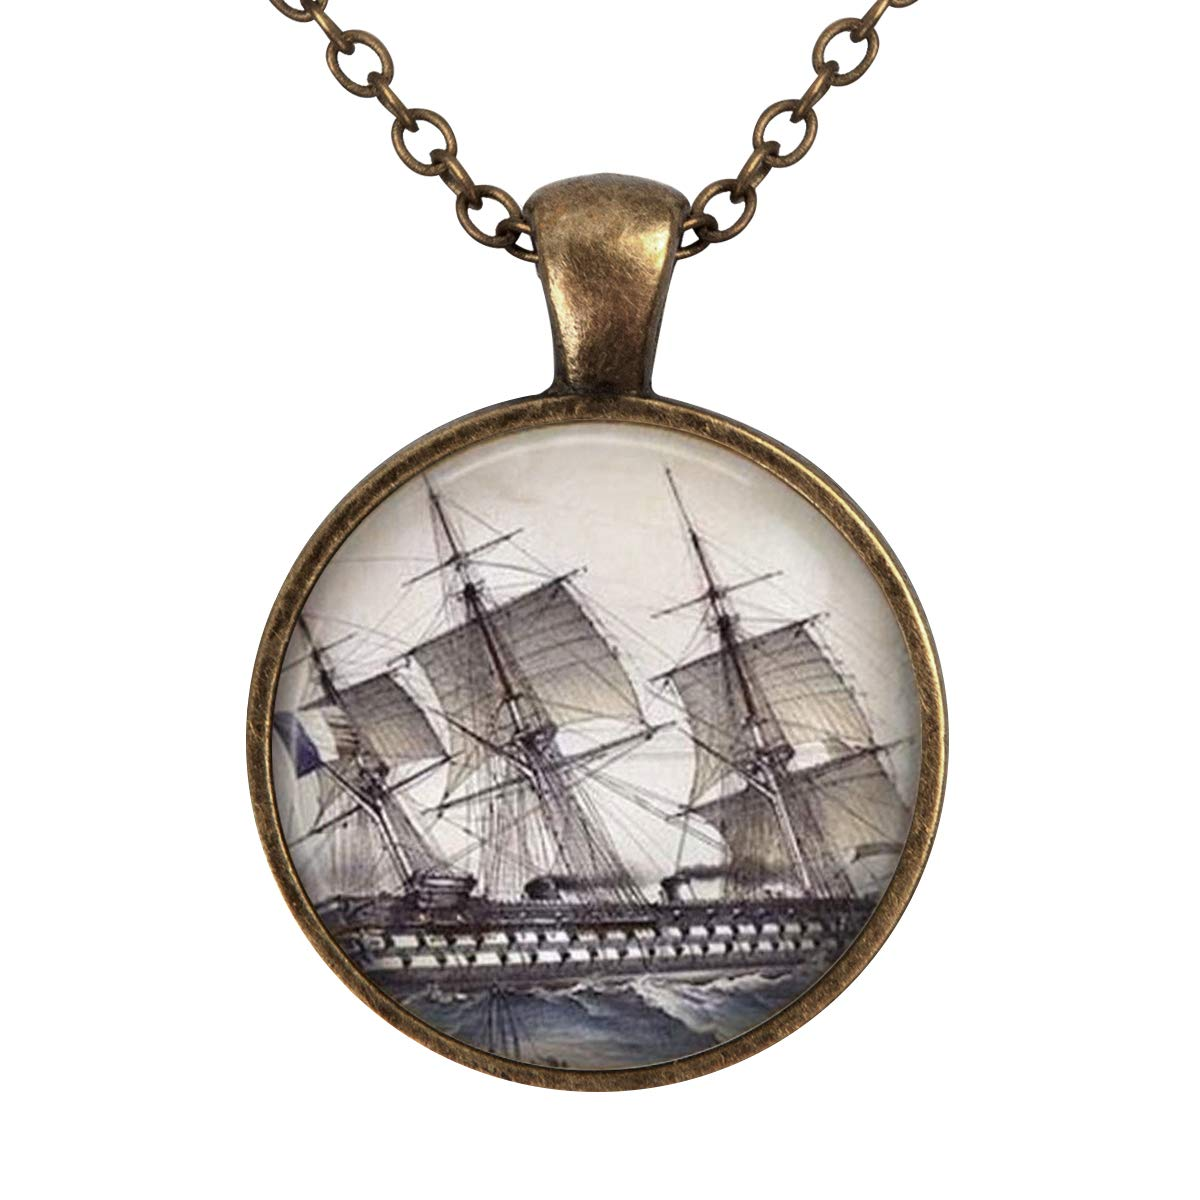 Family Decor Sailing Ship Pendant Necklace Cabochon Glass Vintage Bronze Chain Necklace Jewelry Handmade